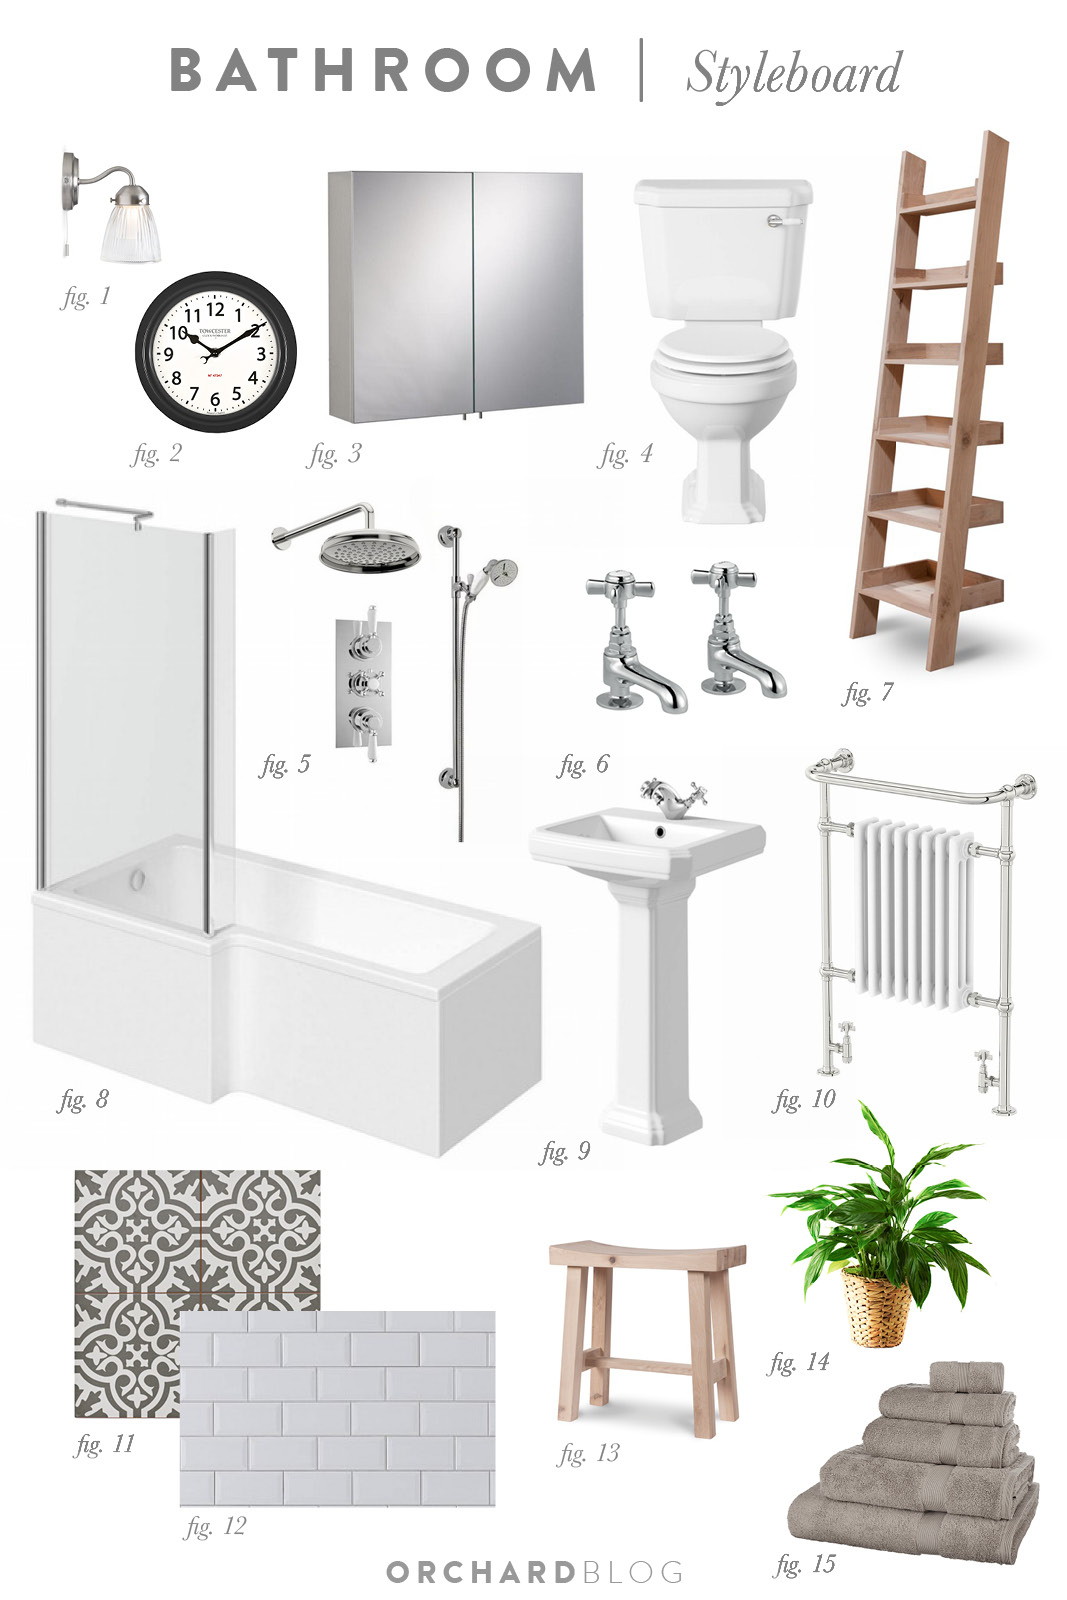 Bathroom Style board